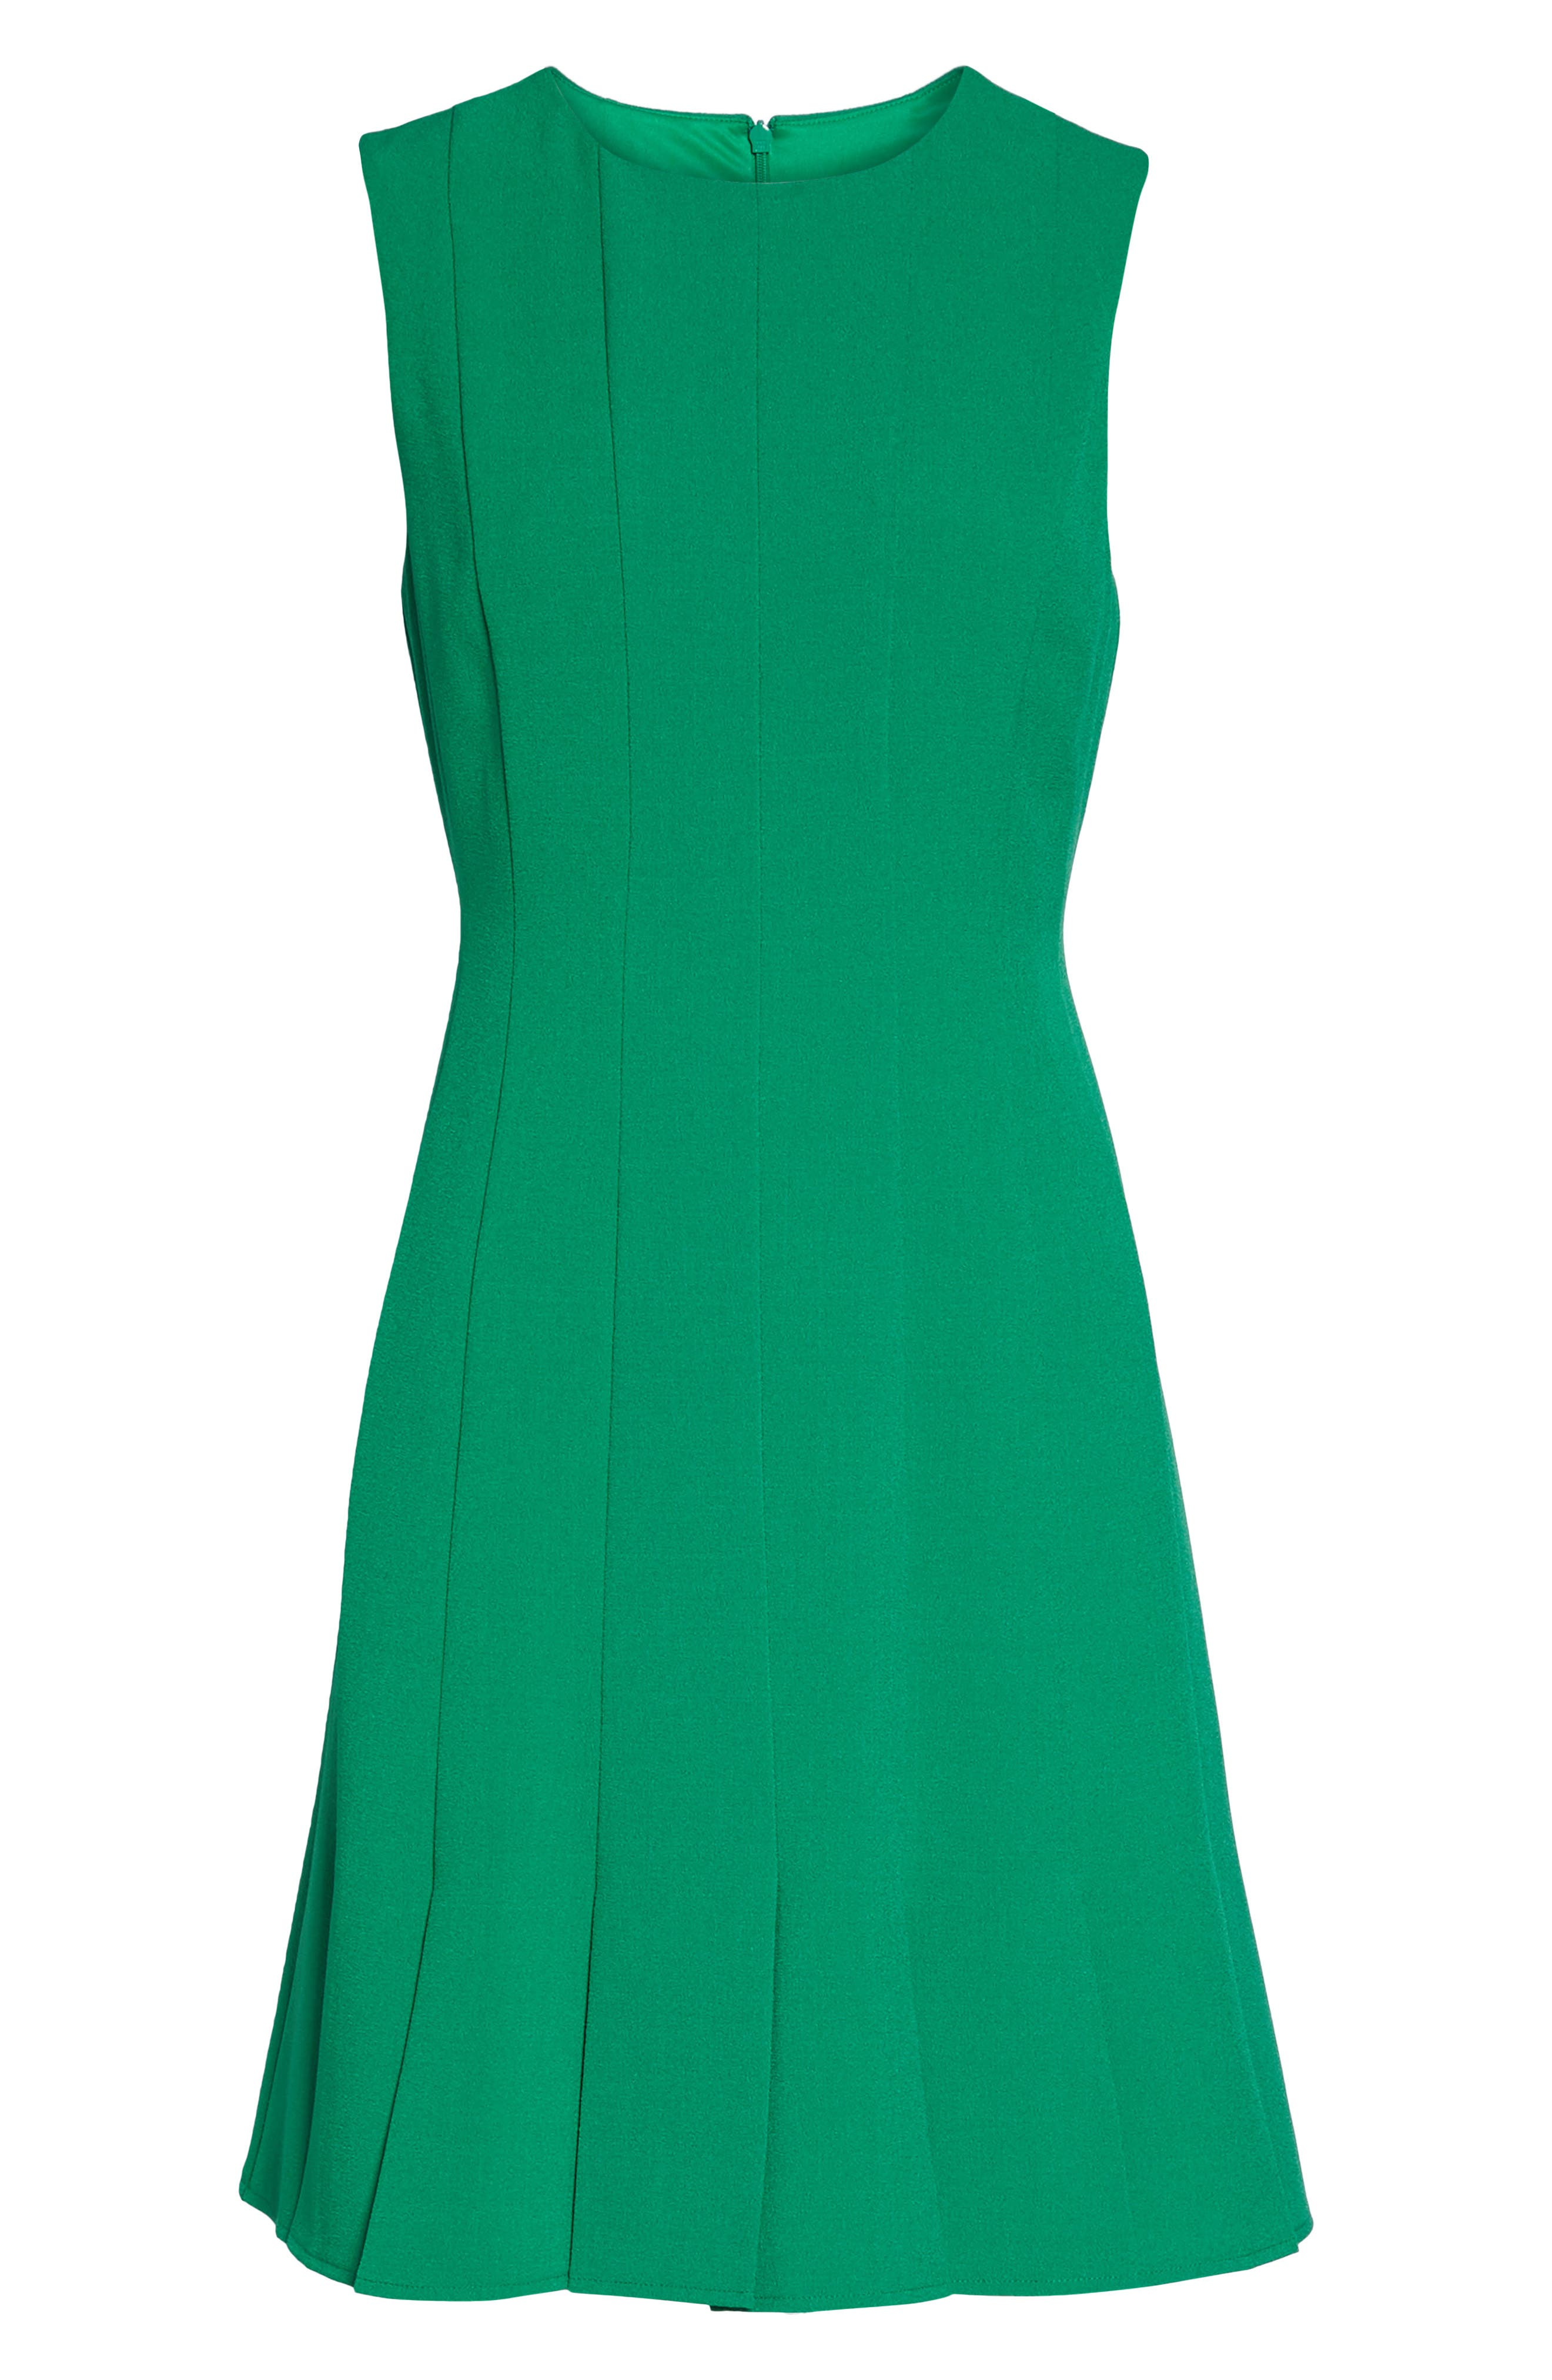 Sleeveless Pleat Panel Fit & Flare Dress,                             Alternate thumbnail 7, color,                             Green